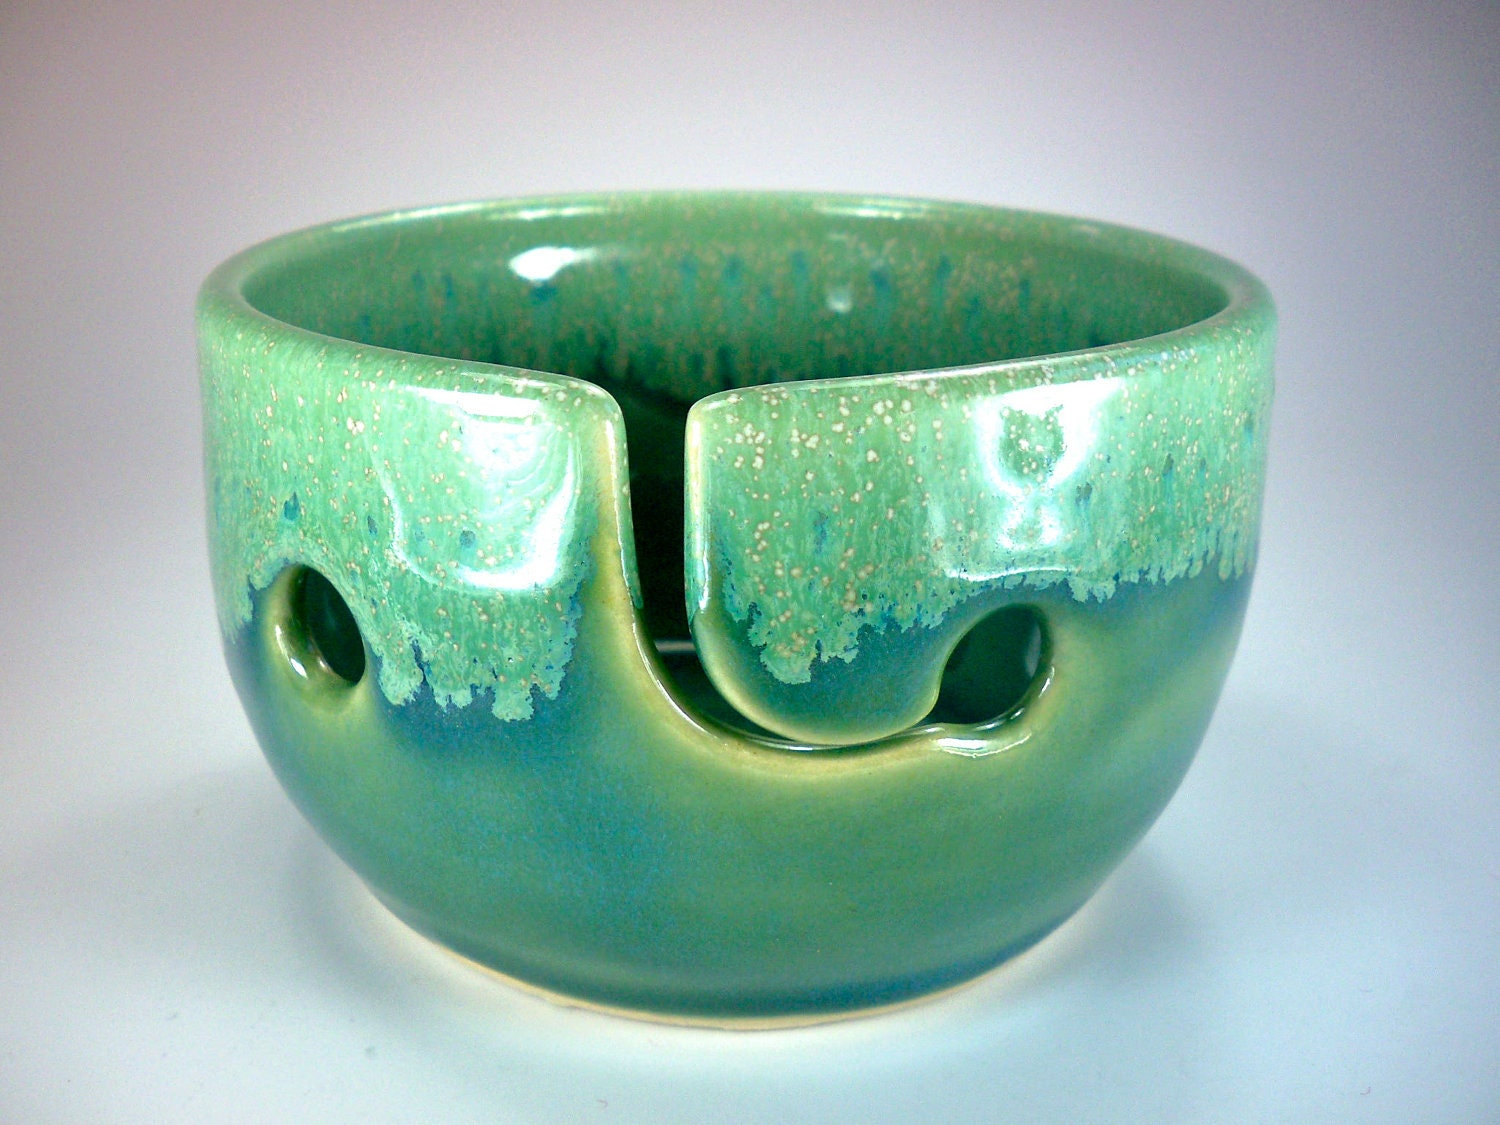 Knitting Bowl, Yarn Bowl, Portable Travel Size, Handmade Ceramic Pottery, In Stock